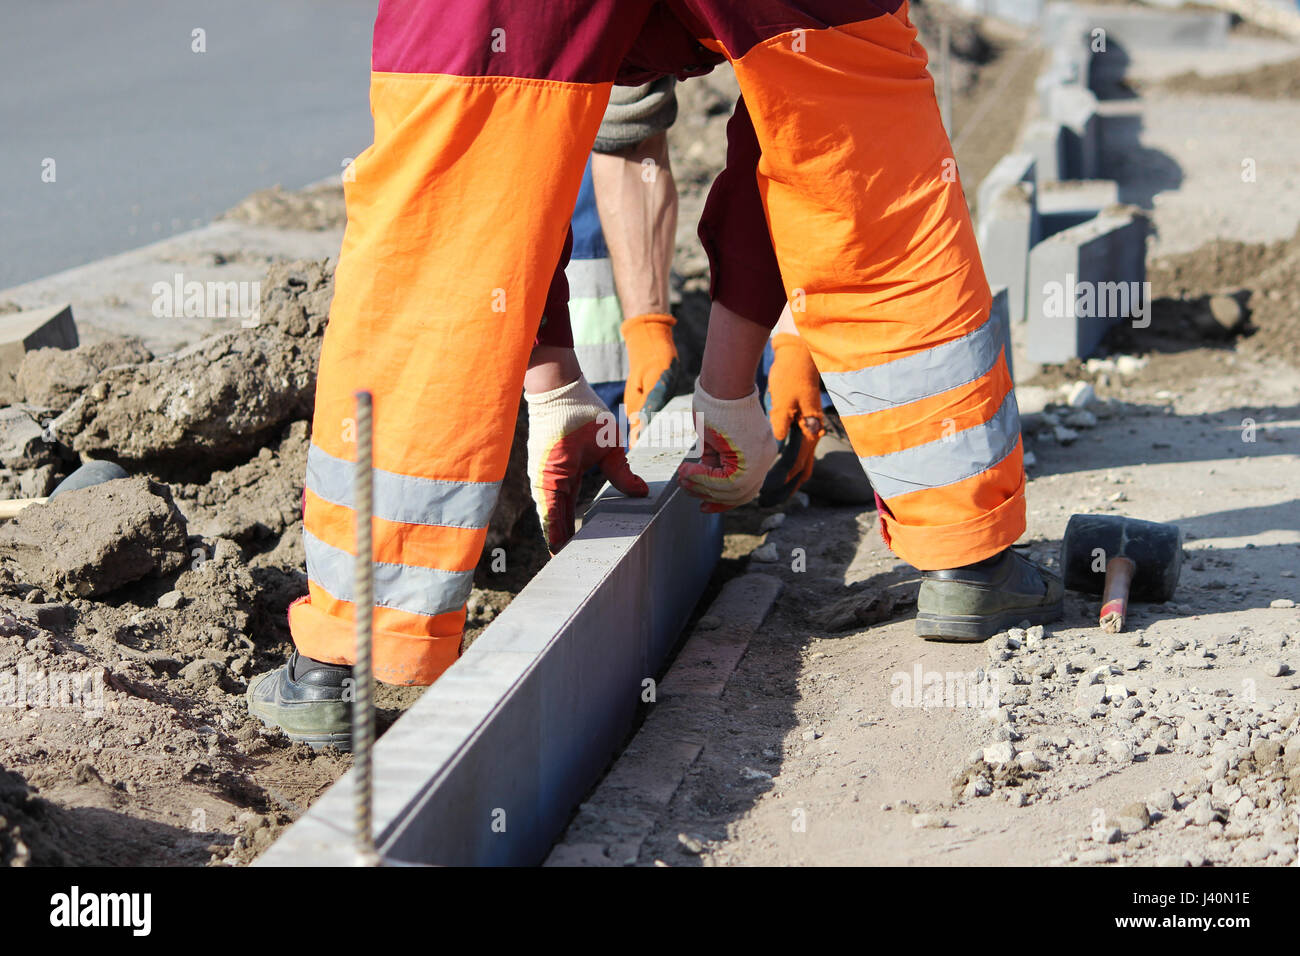 Repair of the sidewalk. Professional working masons in overalls lay curbs before laying stone paving slabs. Stock Photo